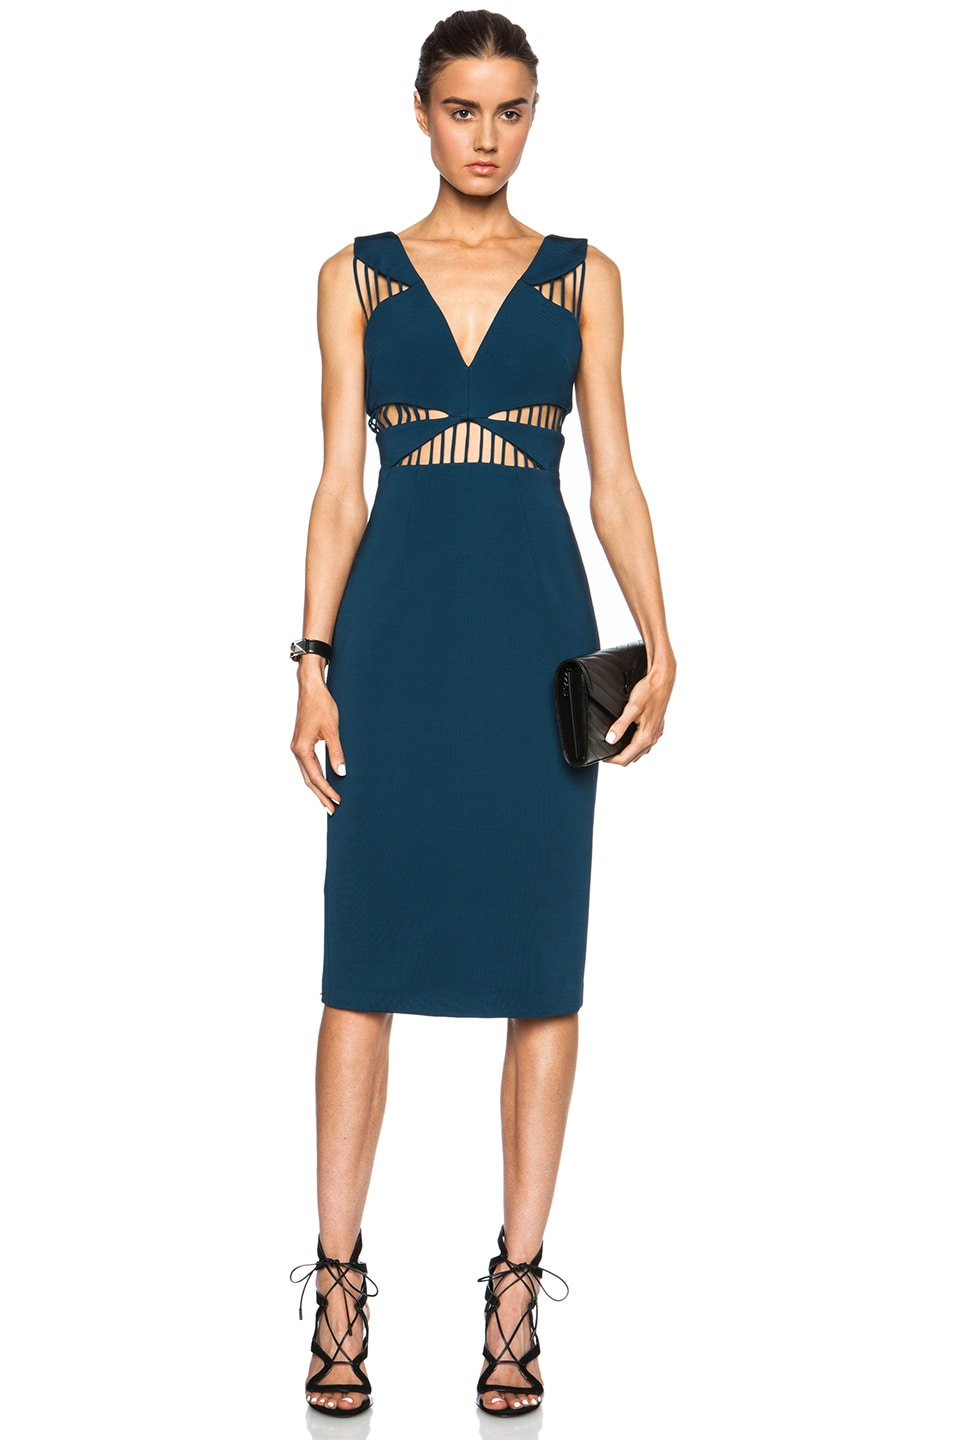 Image 1 of Cushnie et Ochs FORWARD EXCLUSIVE Power Viscose-Blend Dress in Blue Nile